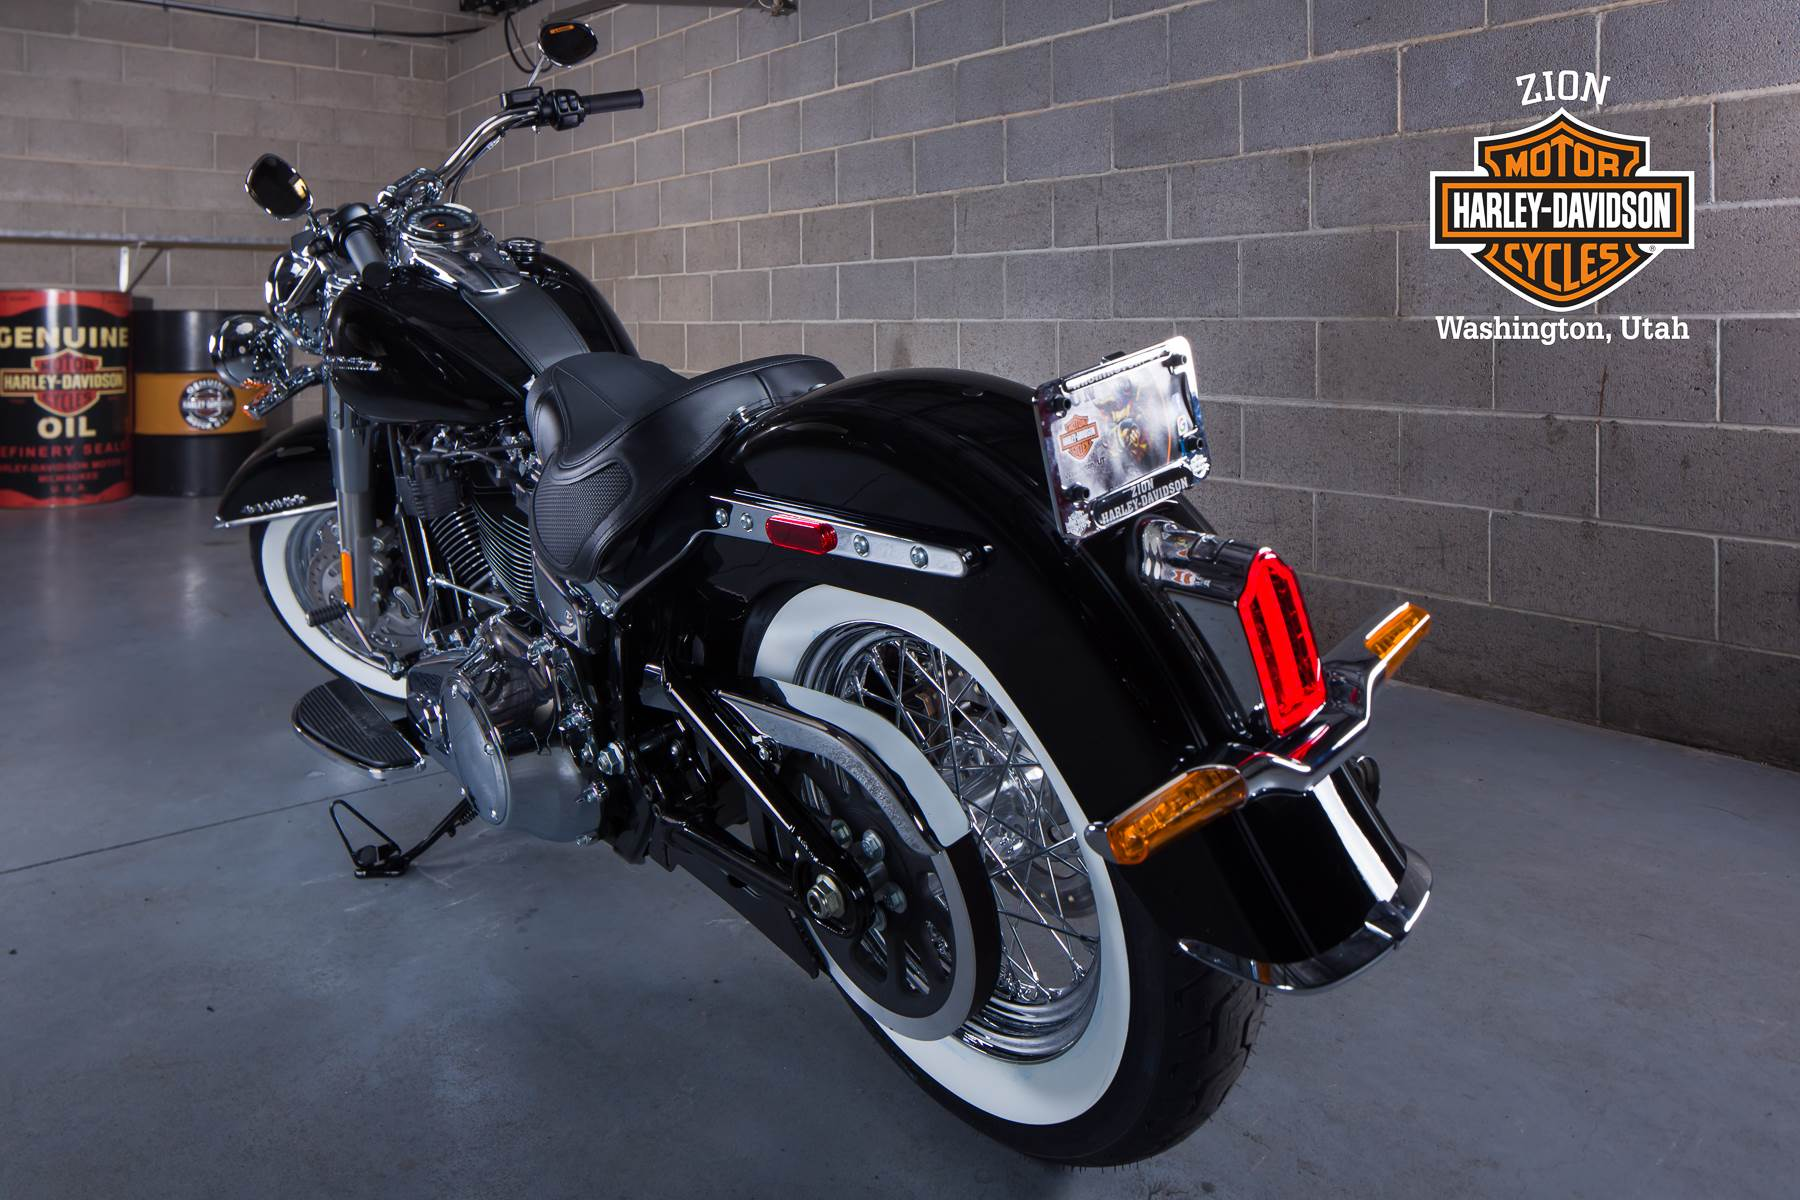 2018 Harley-Davidson Softail® Deluxe 107 in Washington, Utah - Photo 9